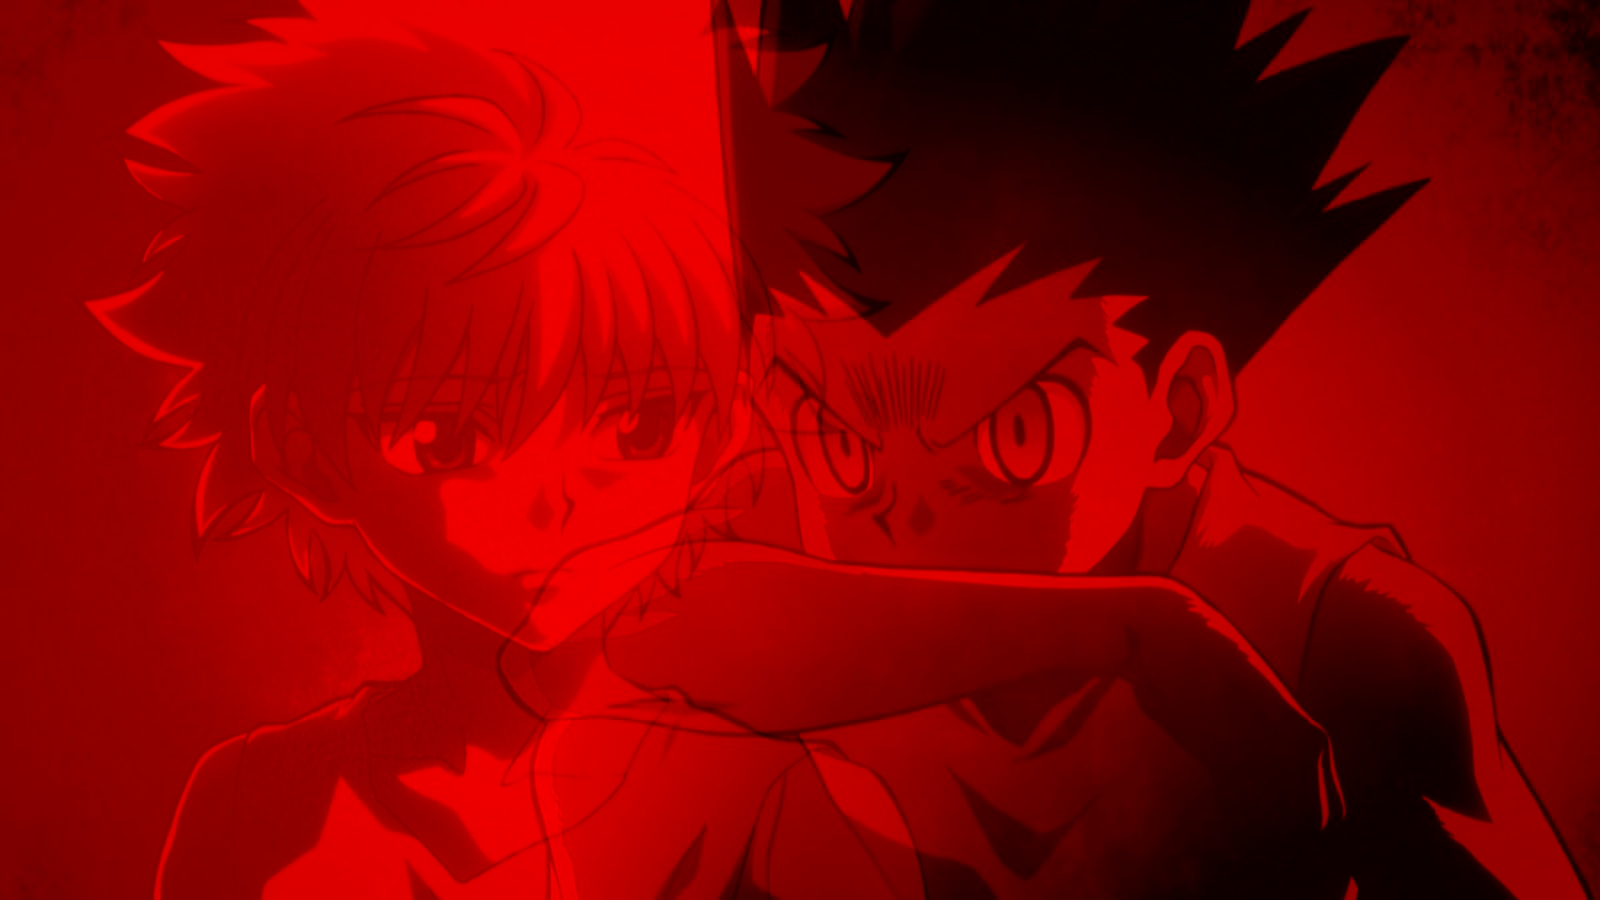 Killua X Gon Blood Red Hunter X Hunter Wallpaper